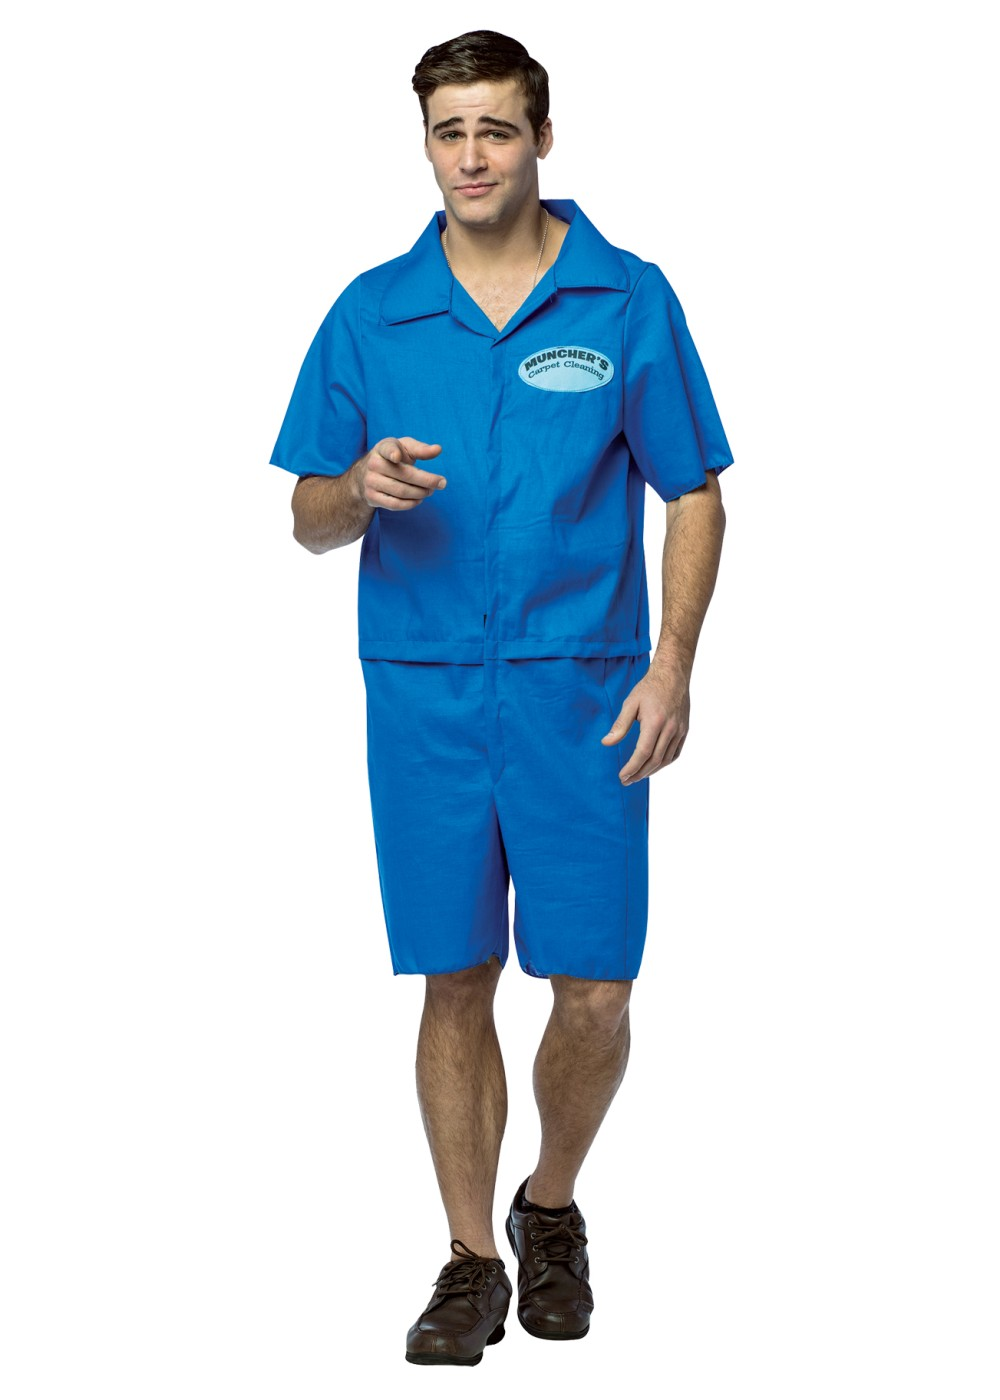 Carpet Cleaning Costume Funny Costumes